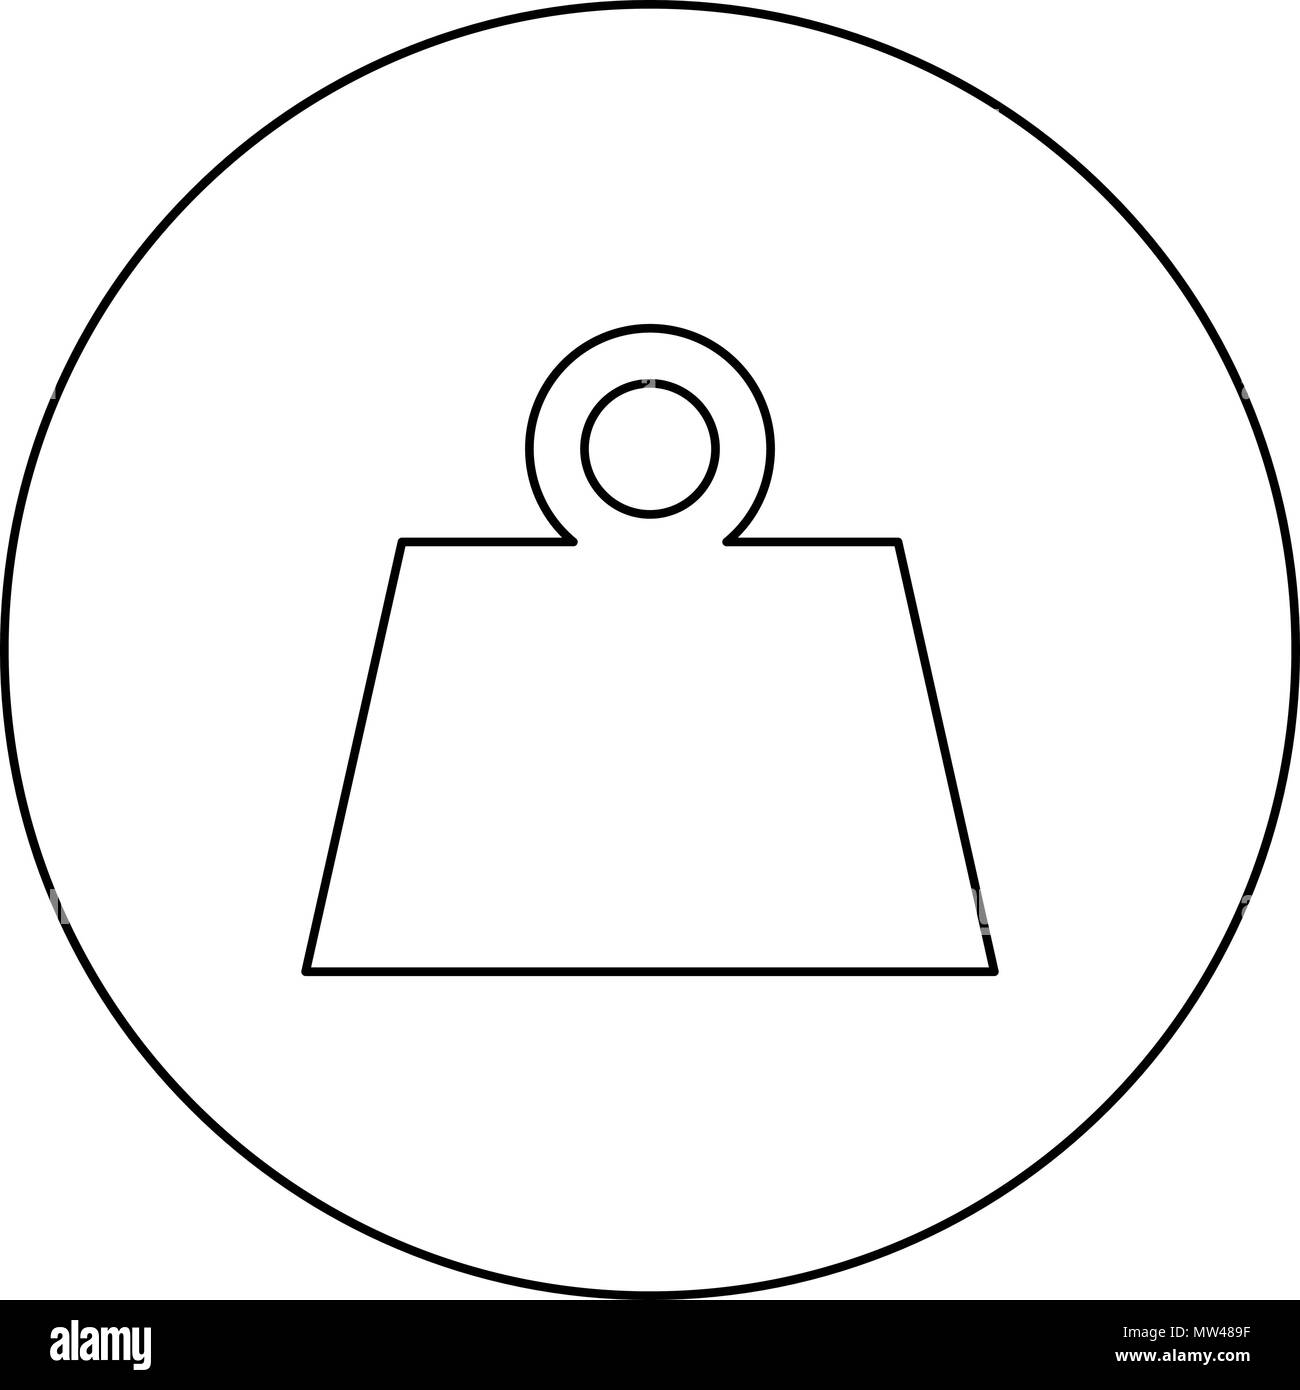 Weight black icon in circle outline vector I isolated - Stock Image